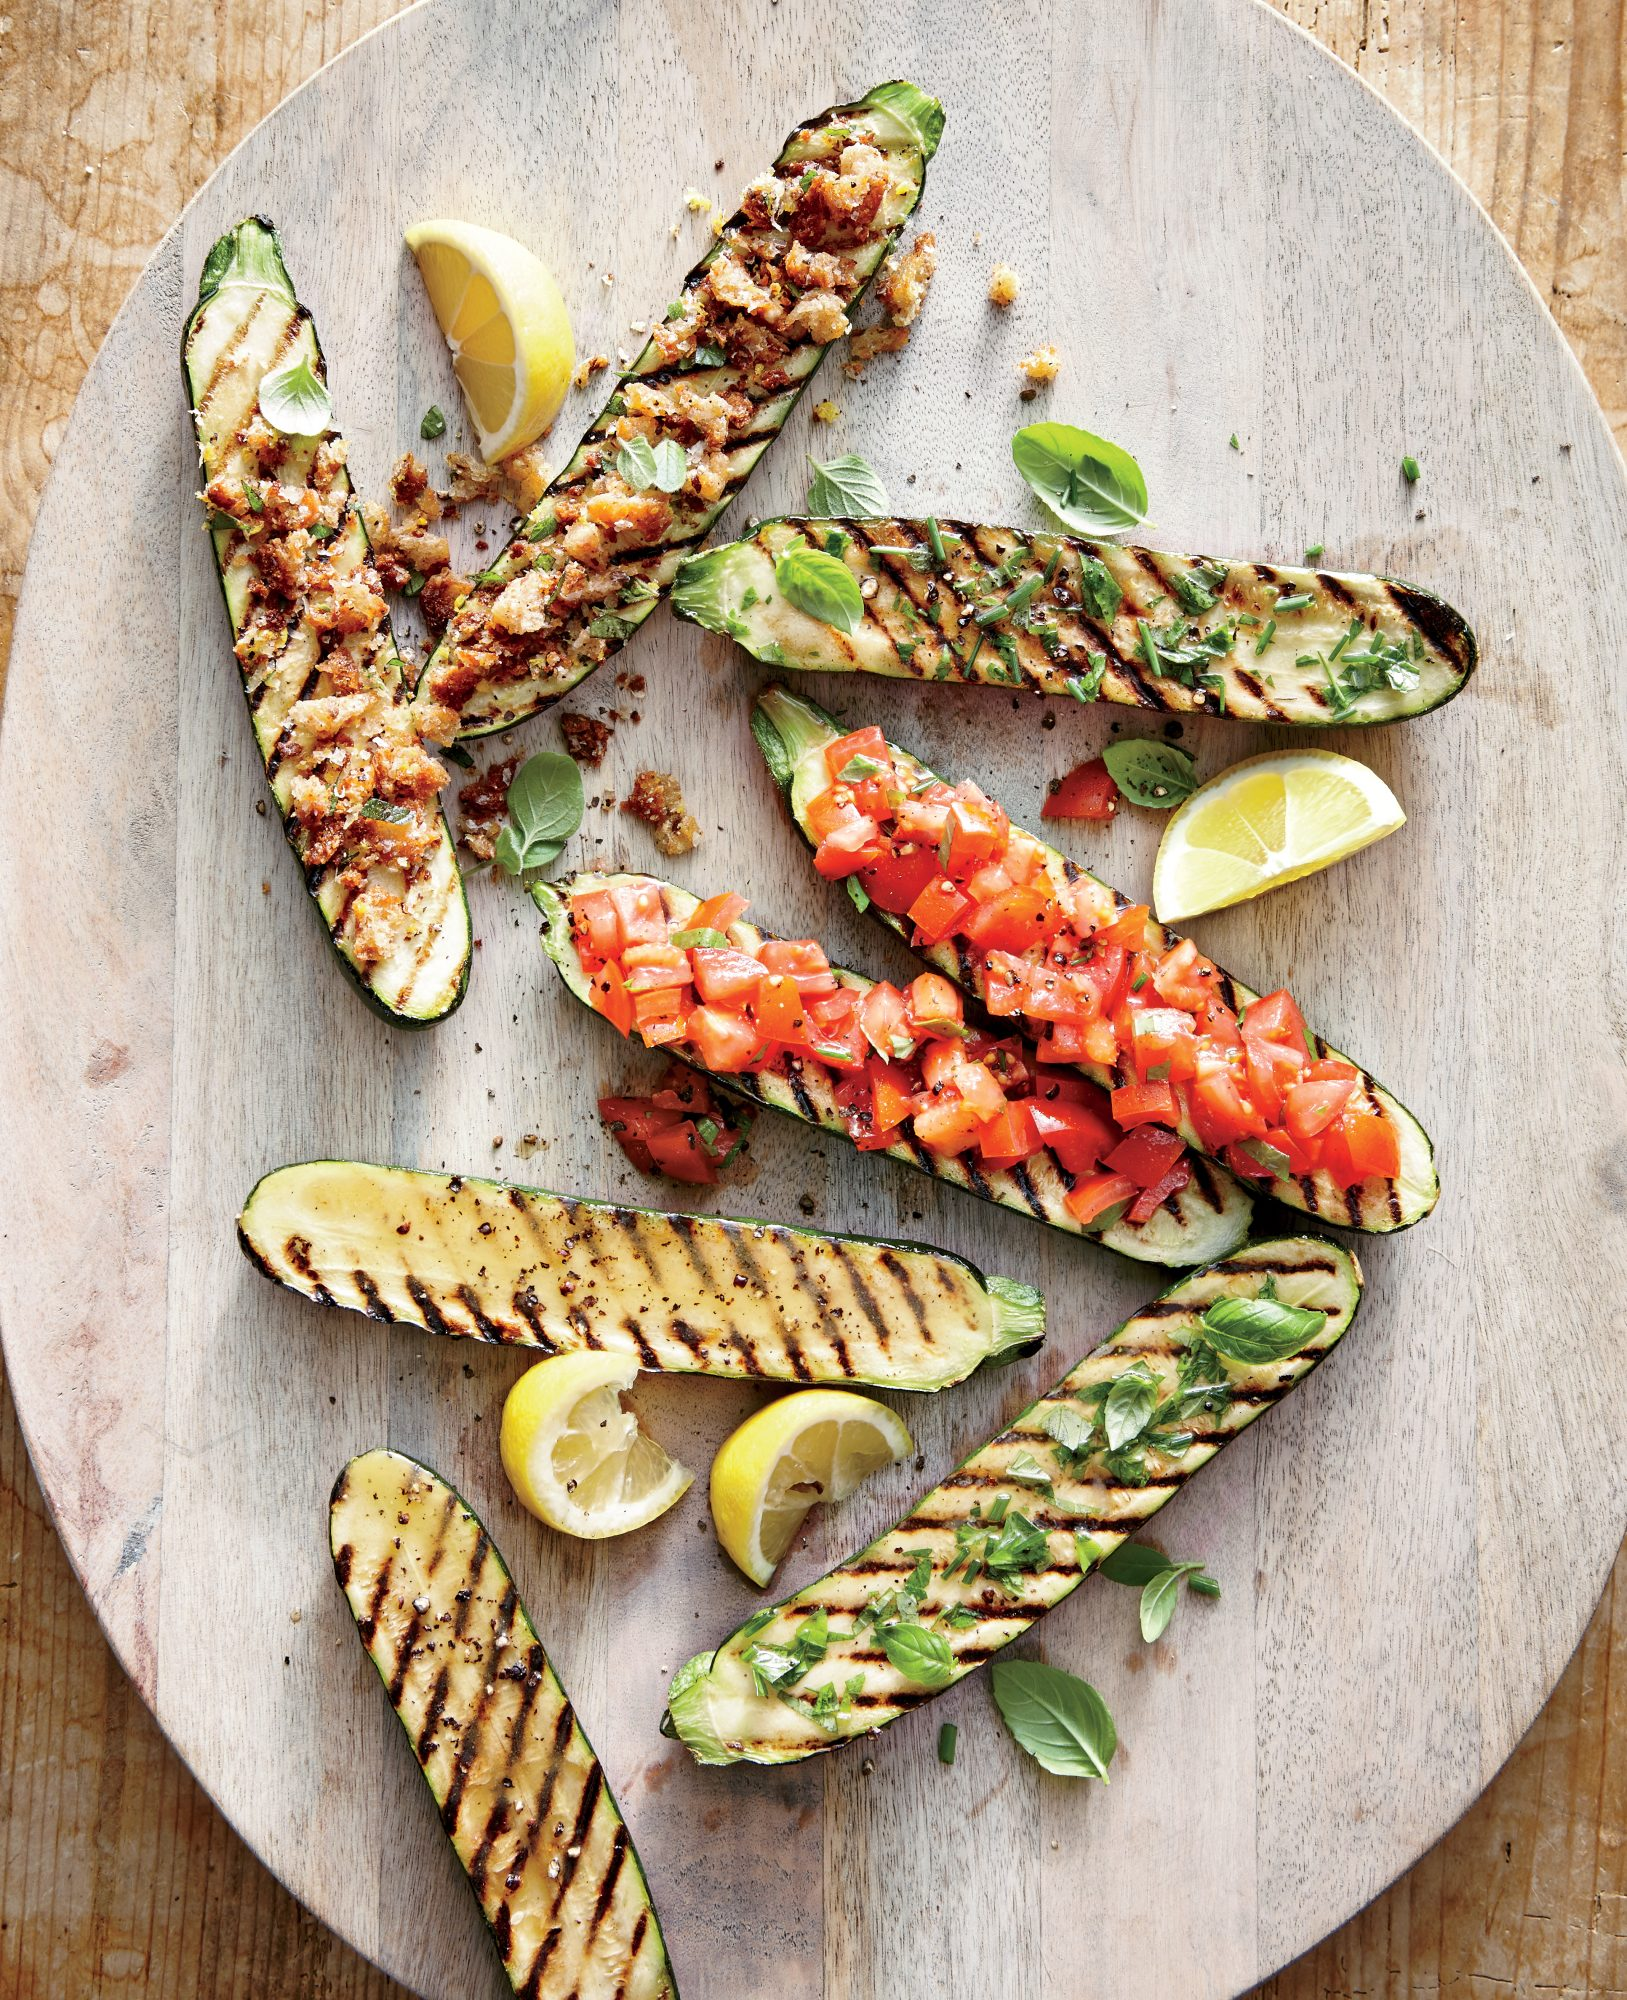 Grilled Zucchini with Lemon-Garlic Breadcrumbs